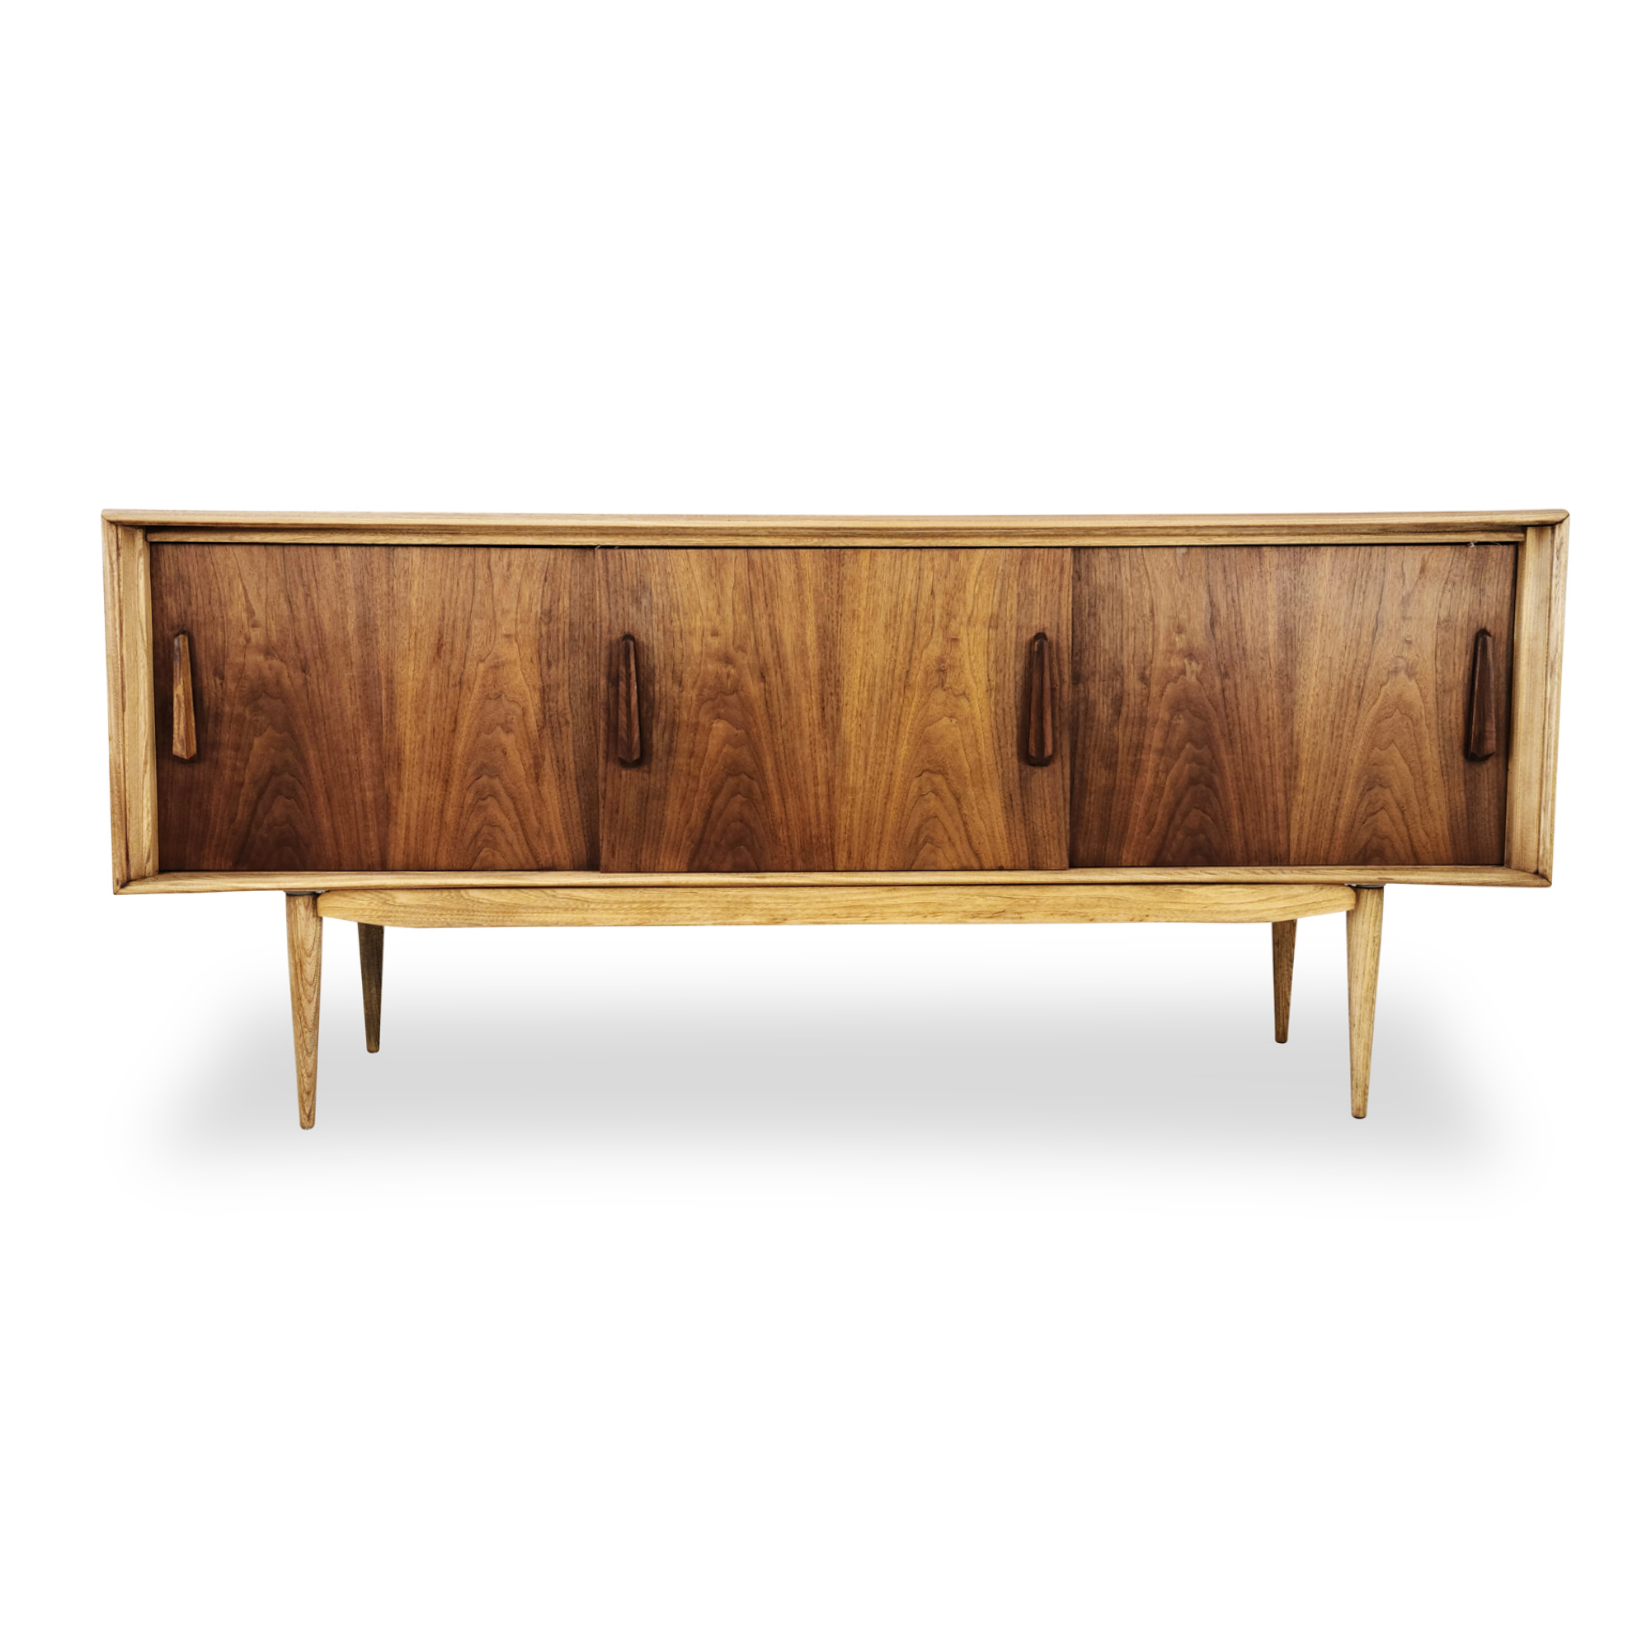 Walnut and Ash Sideboard by Deilcraft